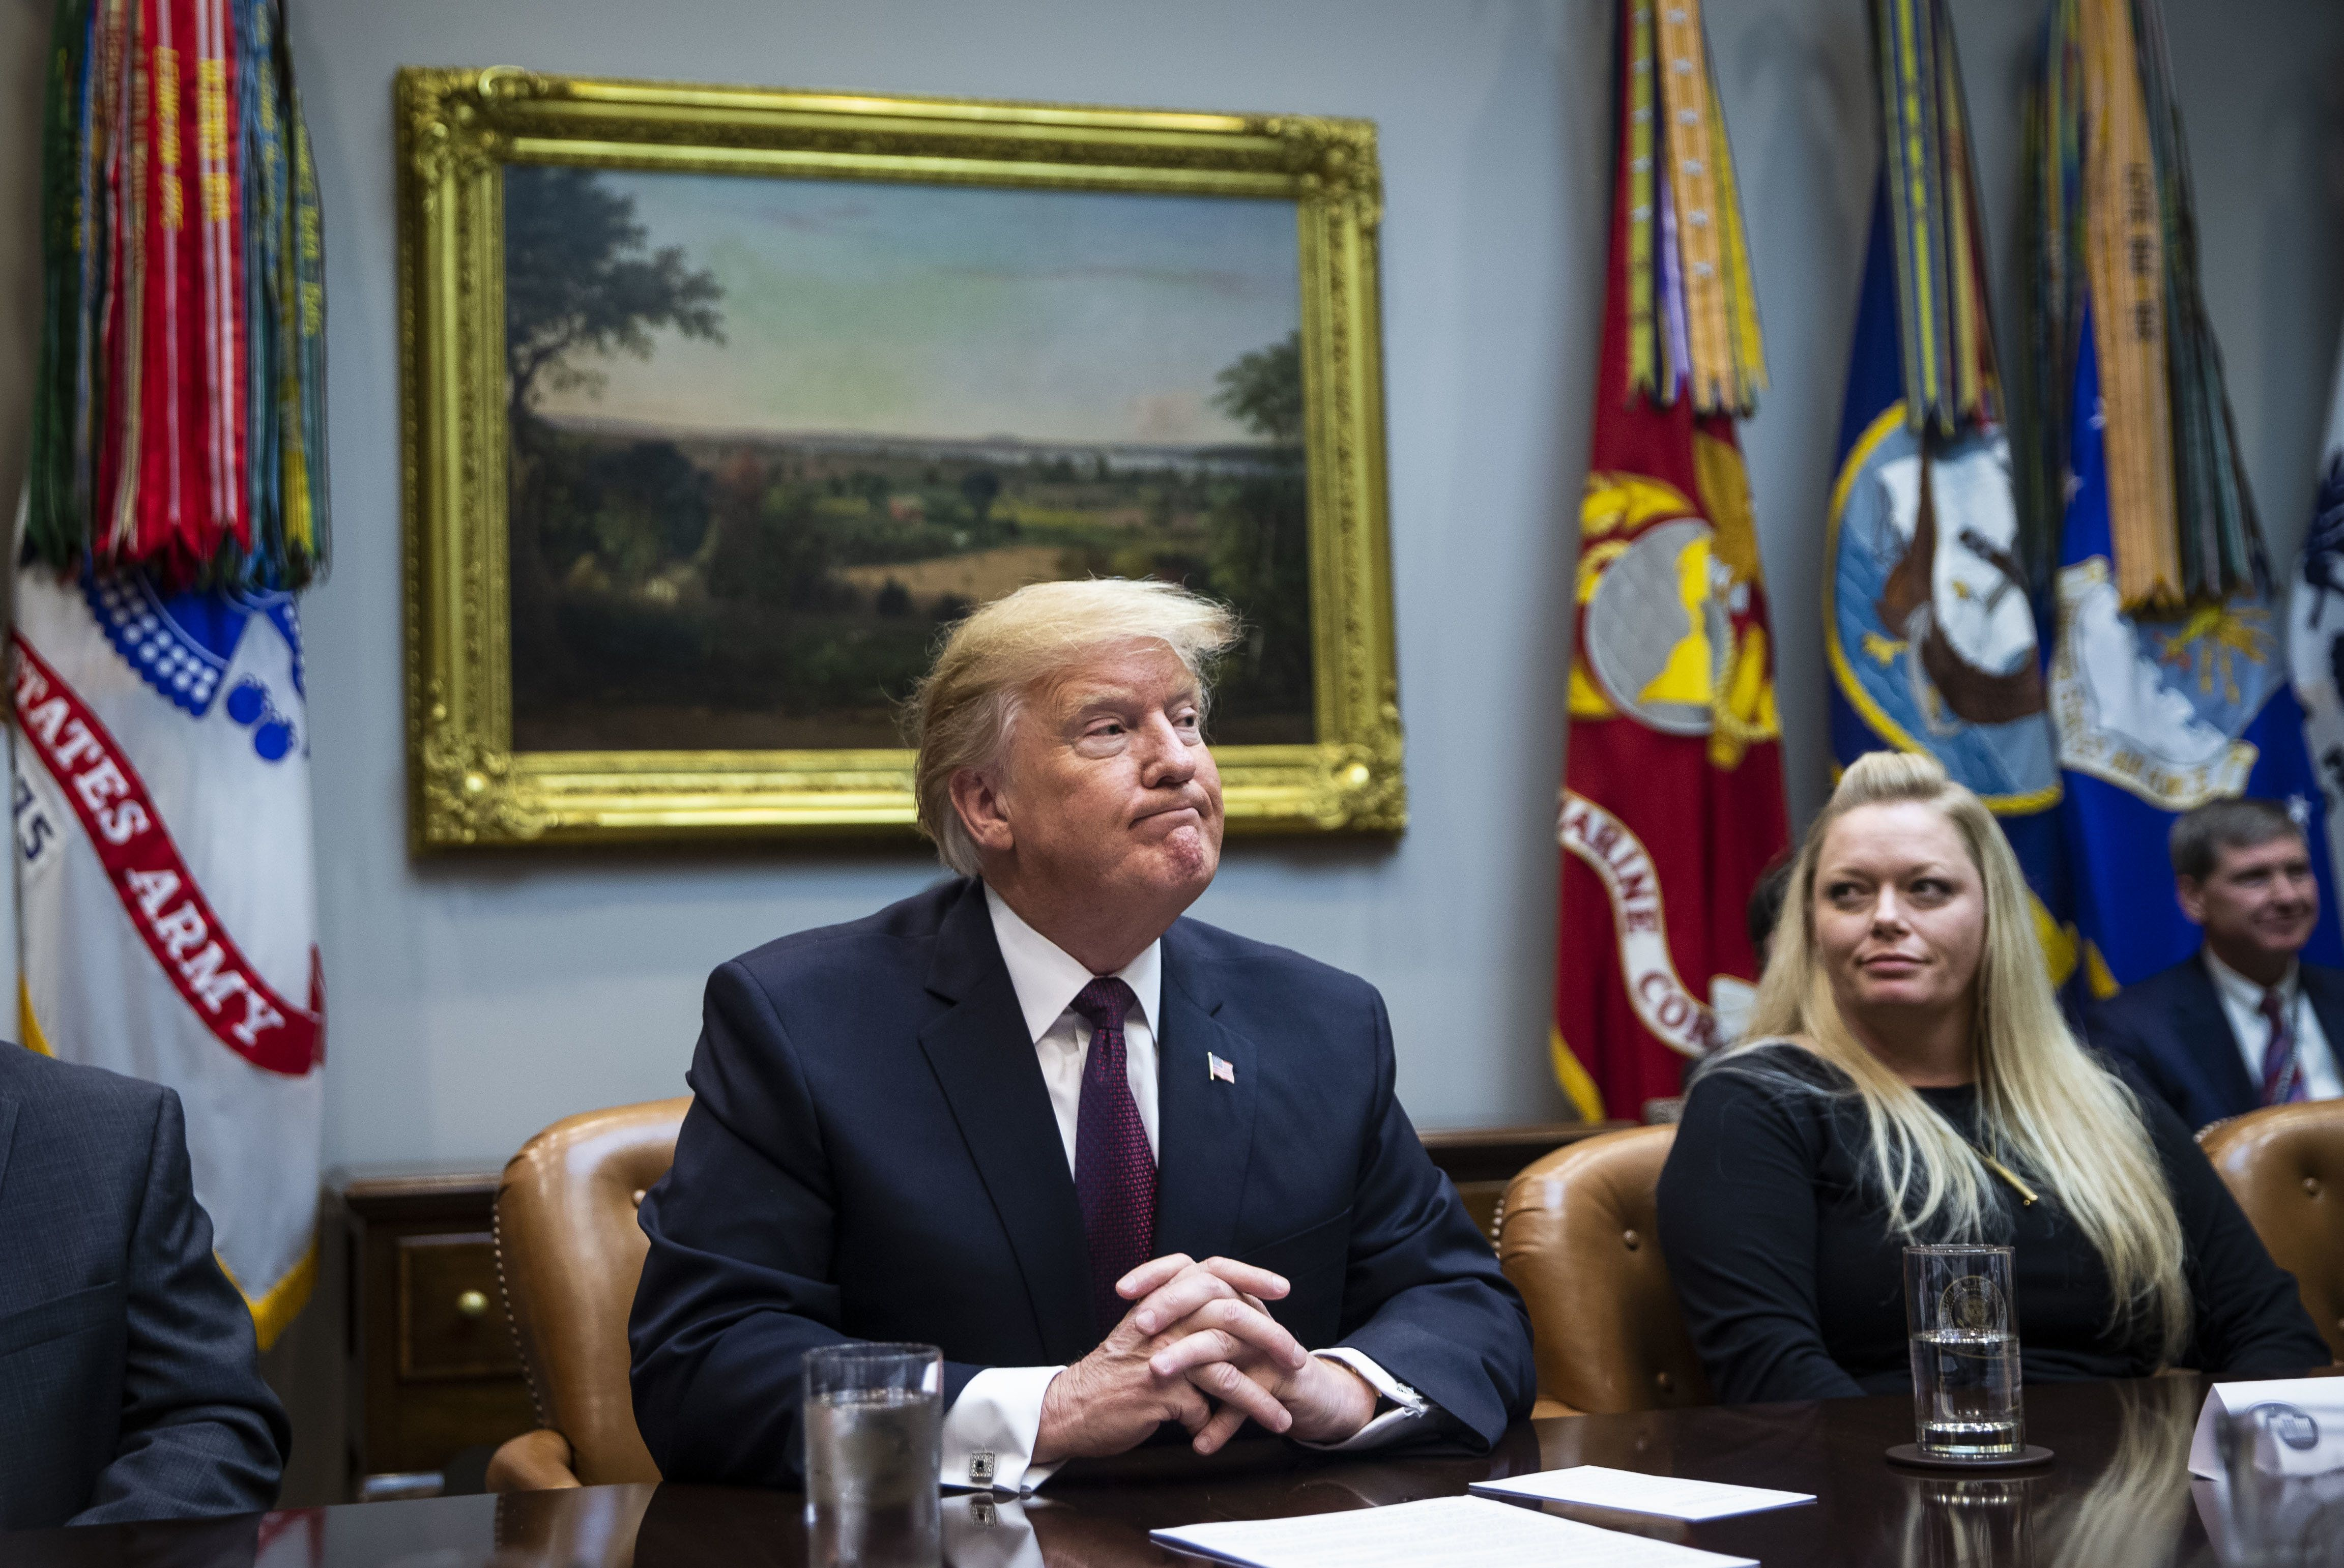 Trump Not 'Thrilled' With Border Deal But Leaning Toward It